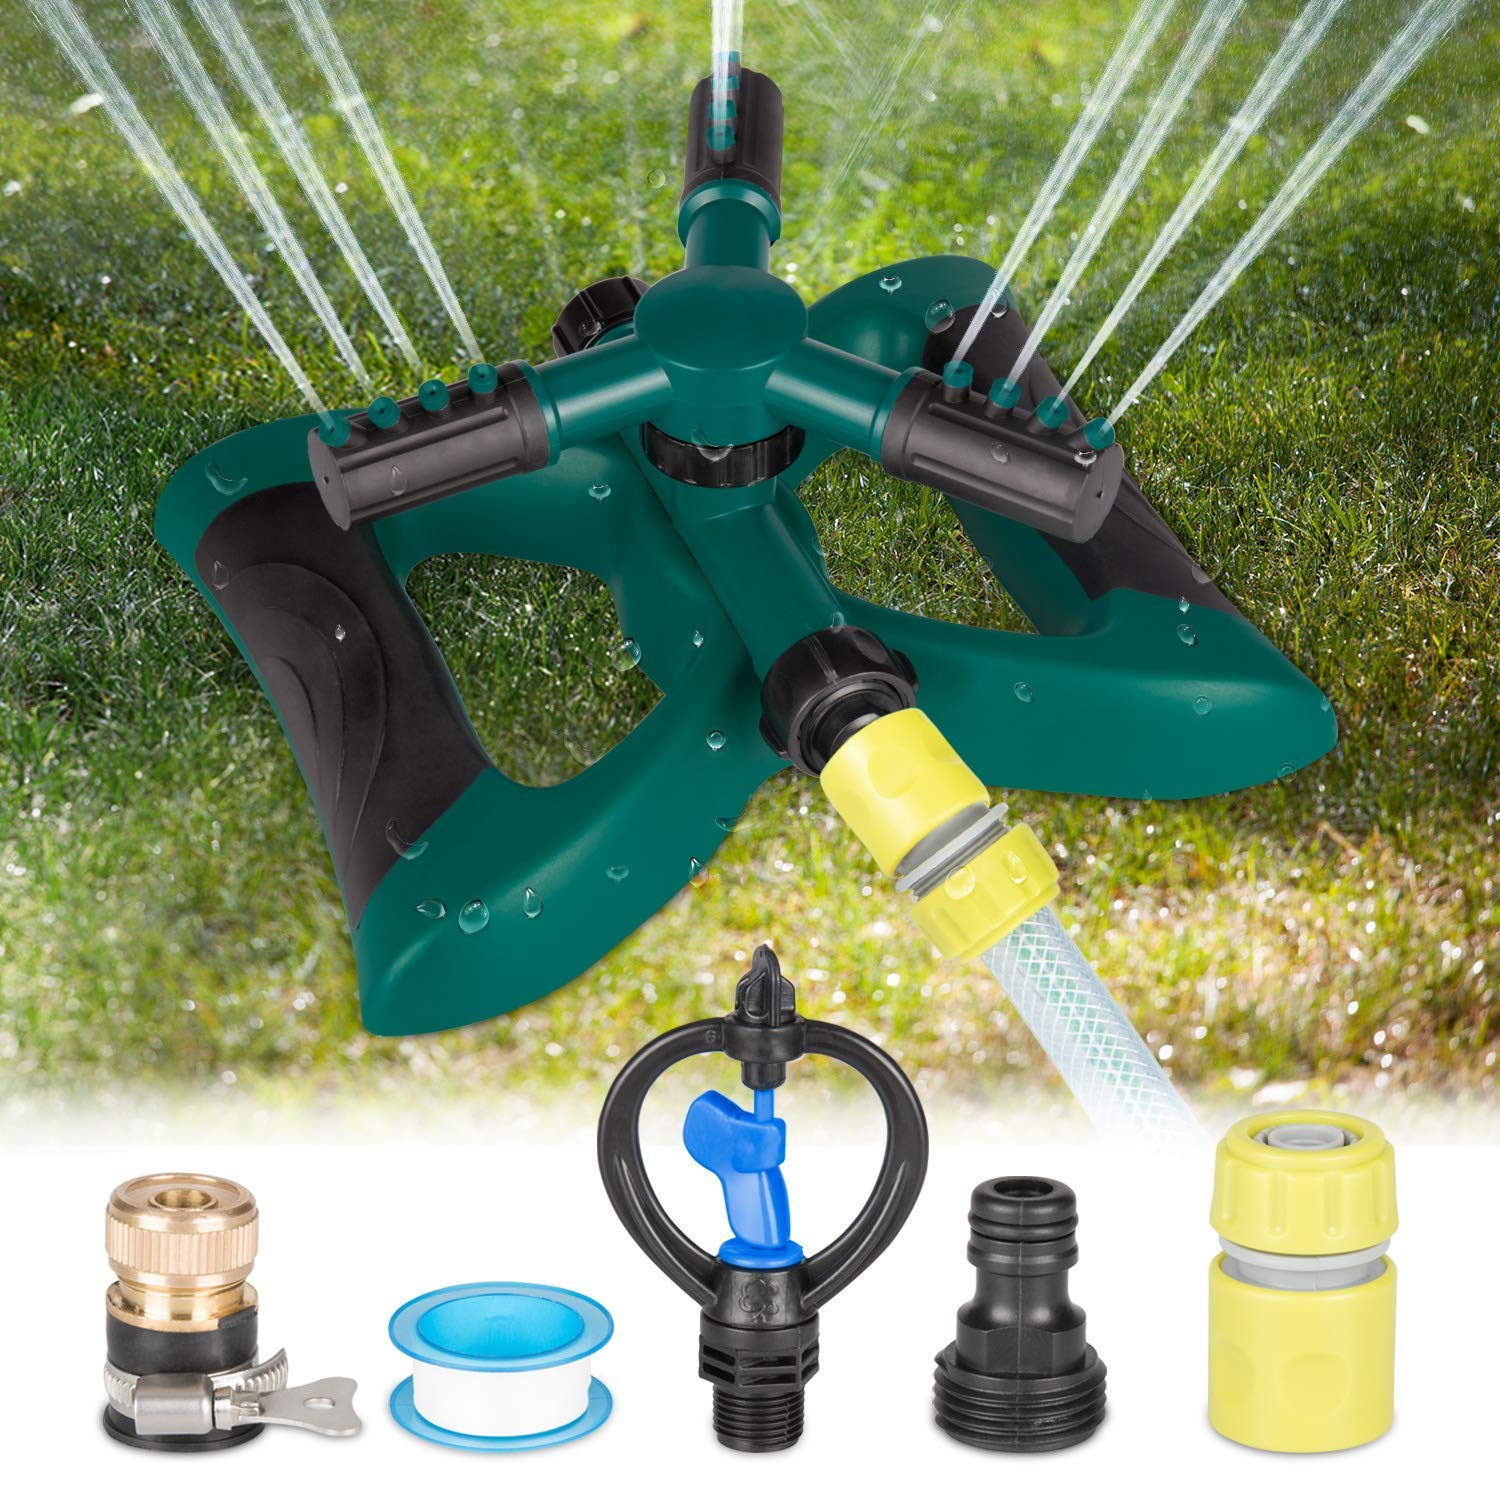 Kupton Lawn Sprinkler System, 360° Rotating Adjustable Sprinkler Head, 3-arm Sprayer Garden Sprinkler Irrigation System, Large Area Covering Up to 3600 Square Feet product image